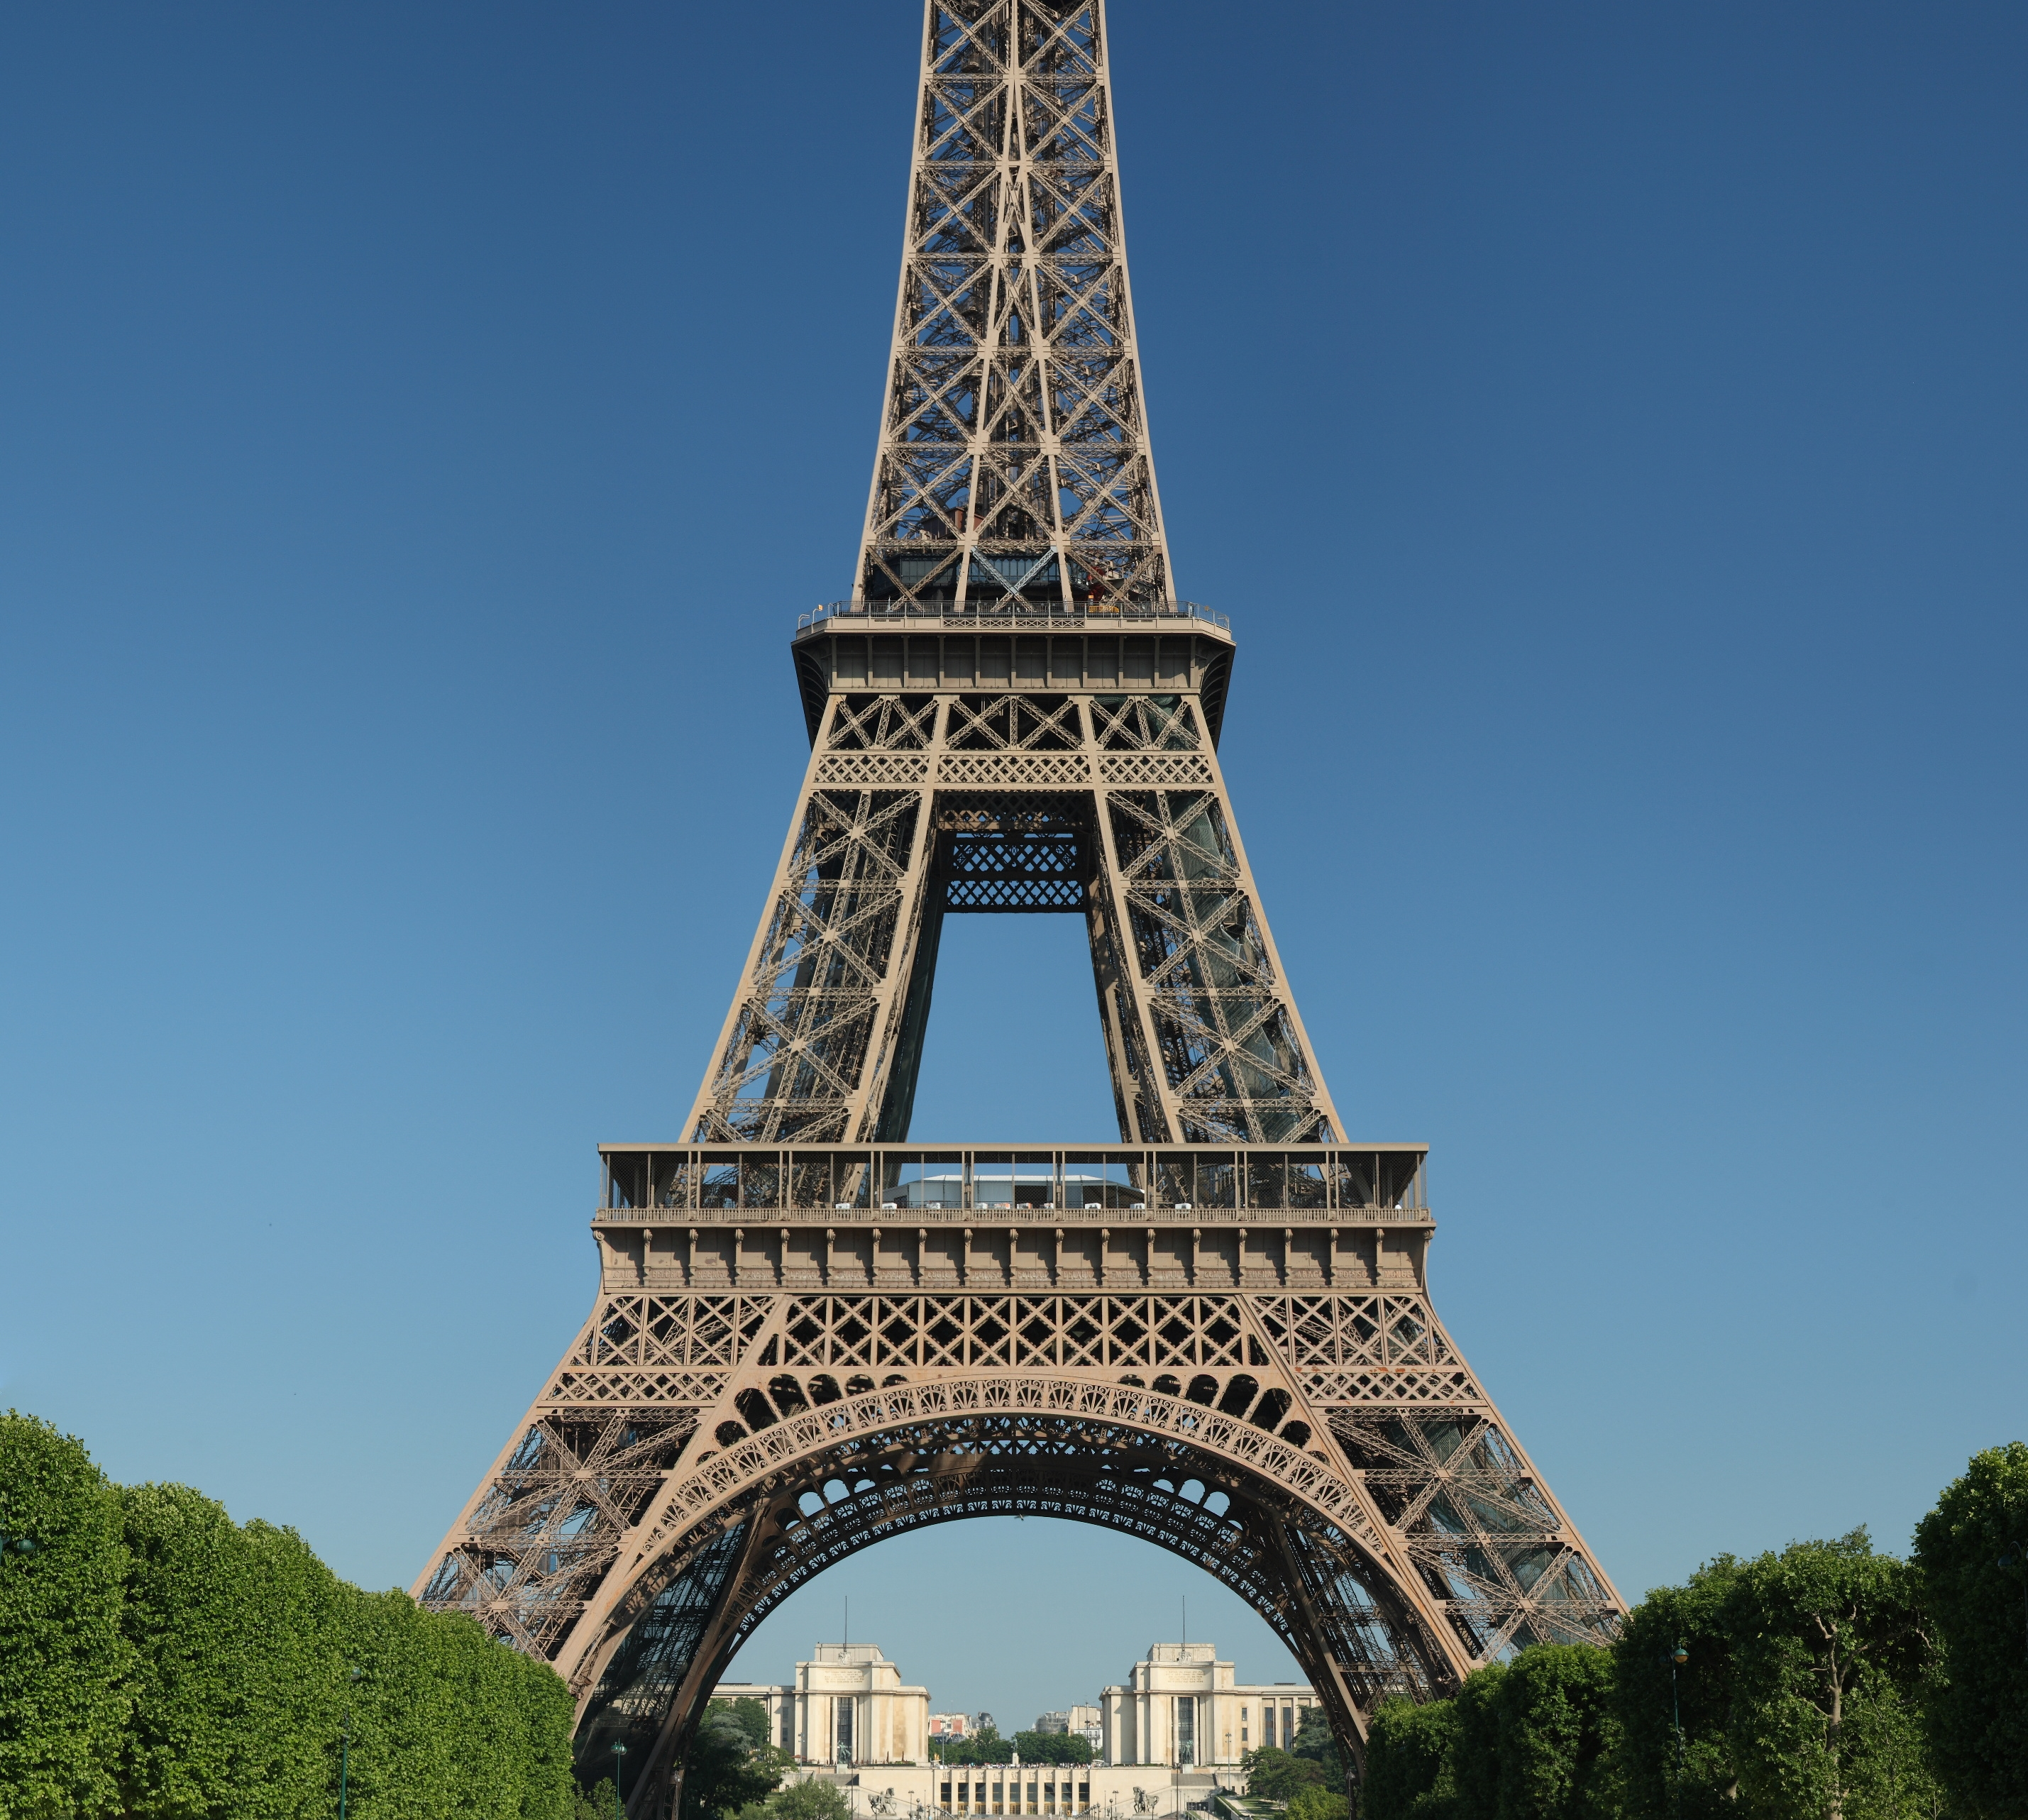 Top ten interesting facts about paris for kids tootlafrance for Names of famous towers